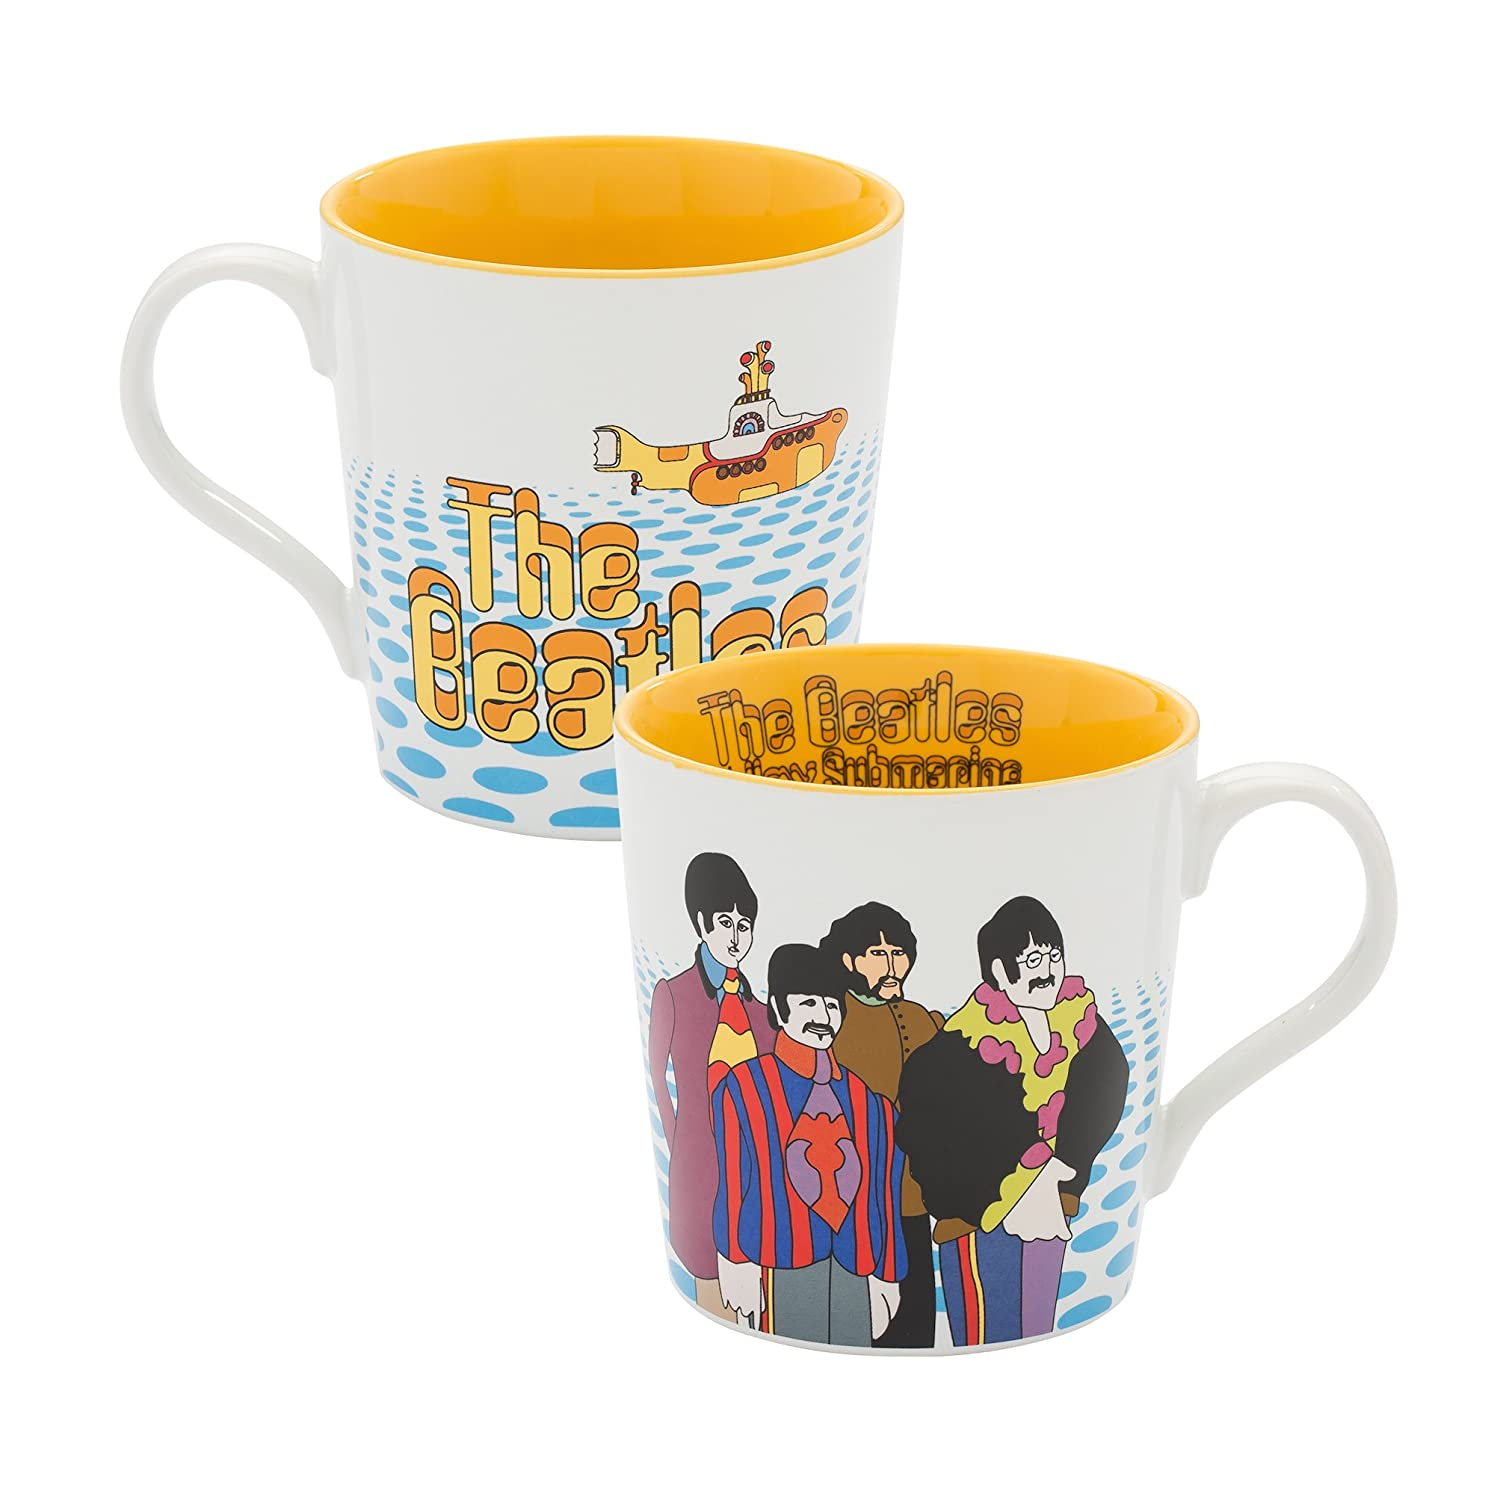 taza Beatles yellow submarine